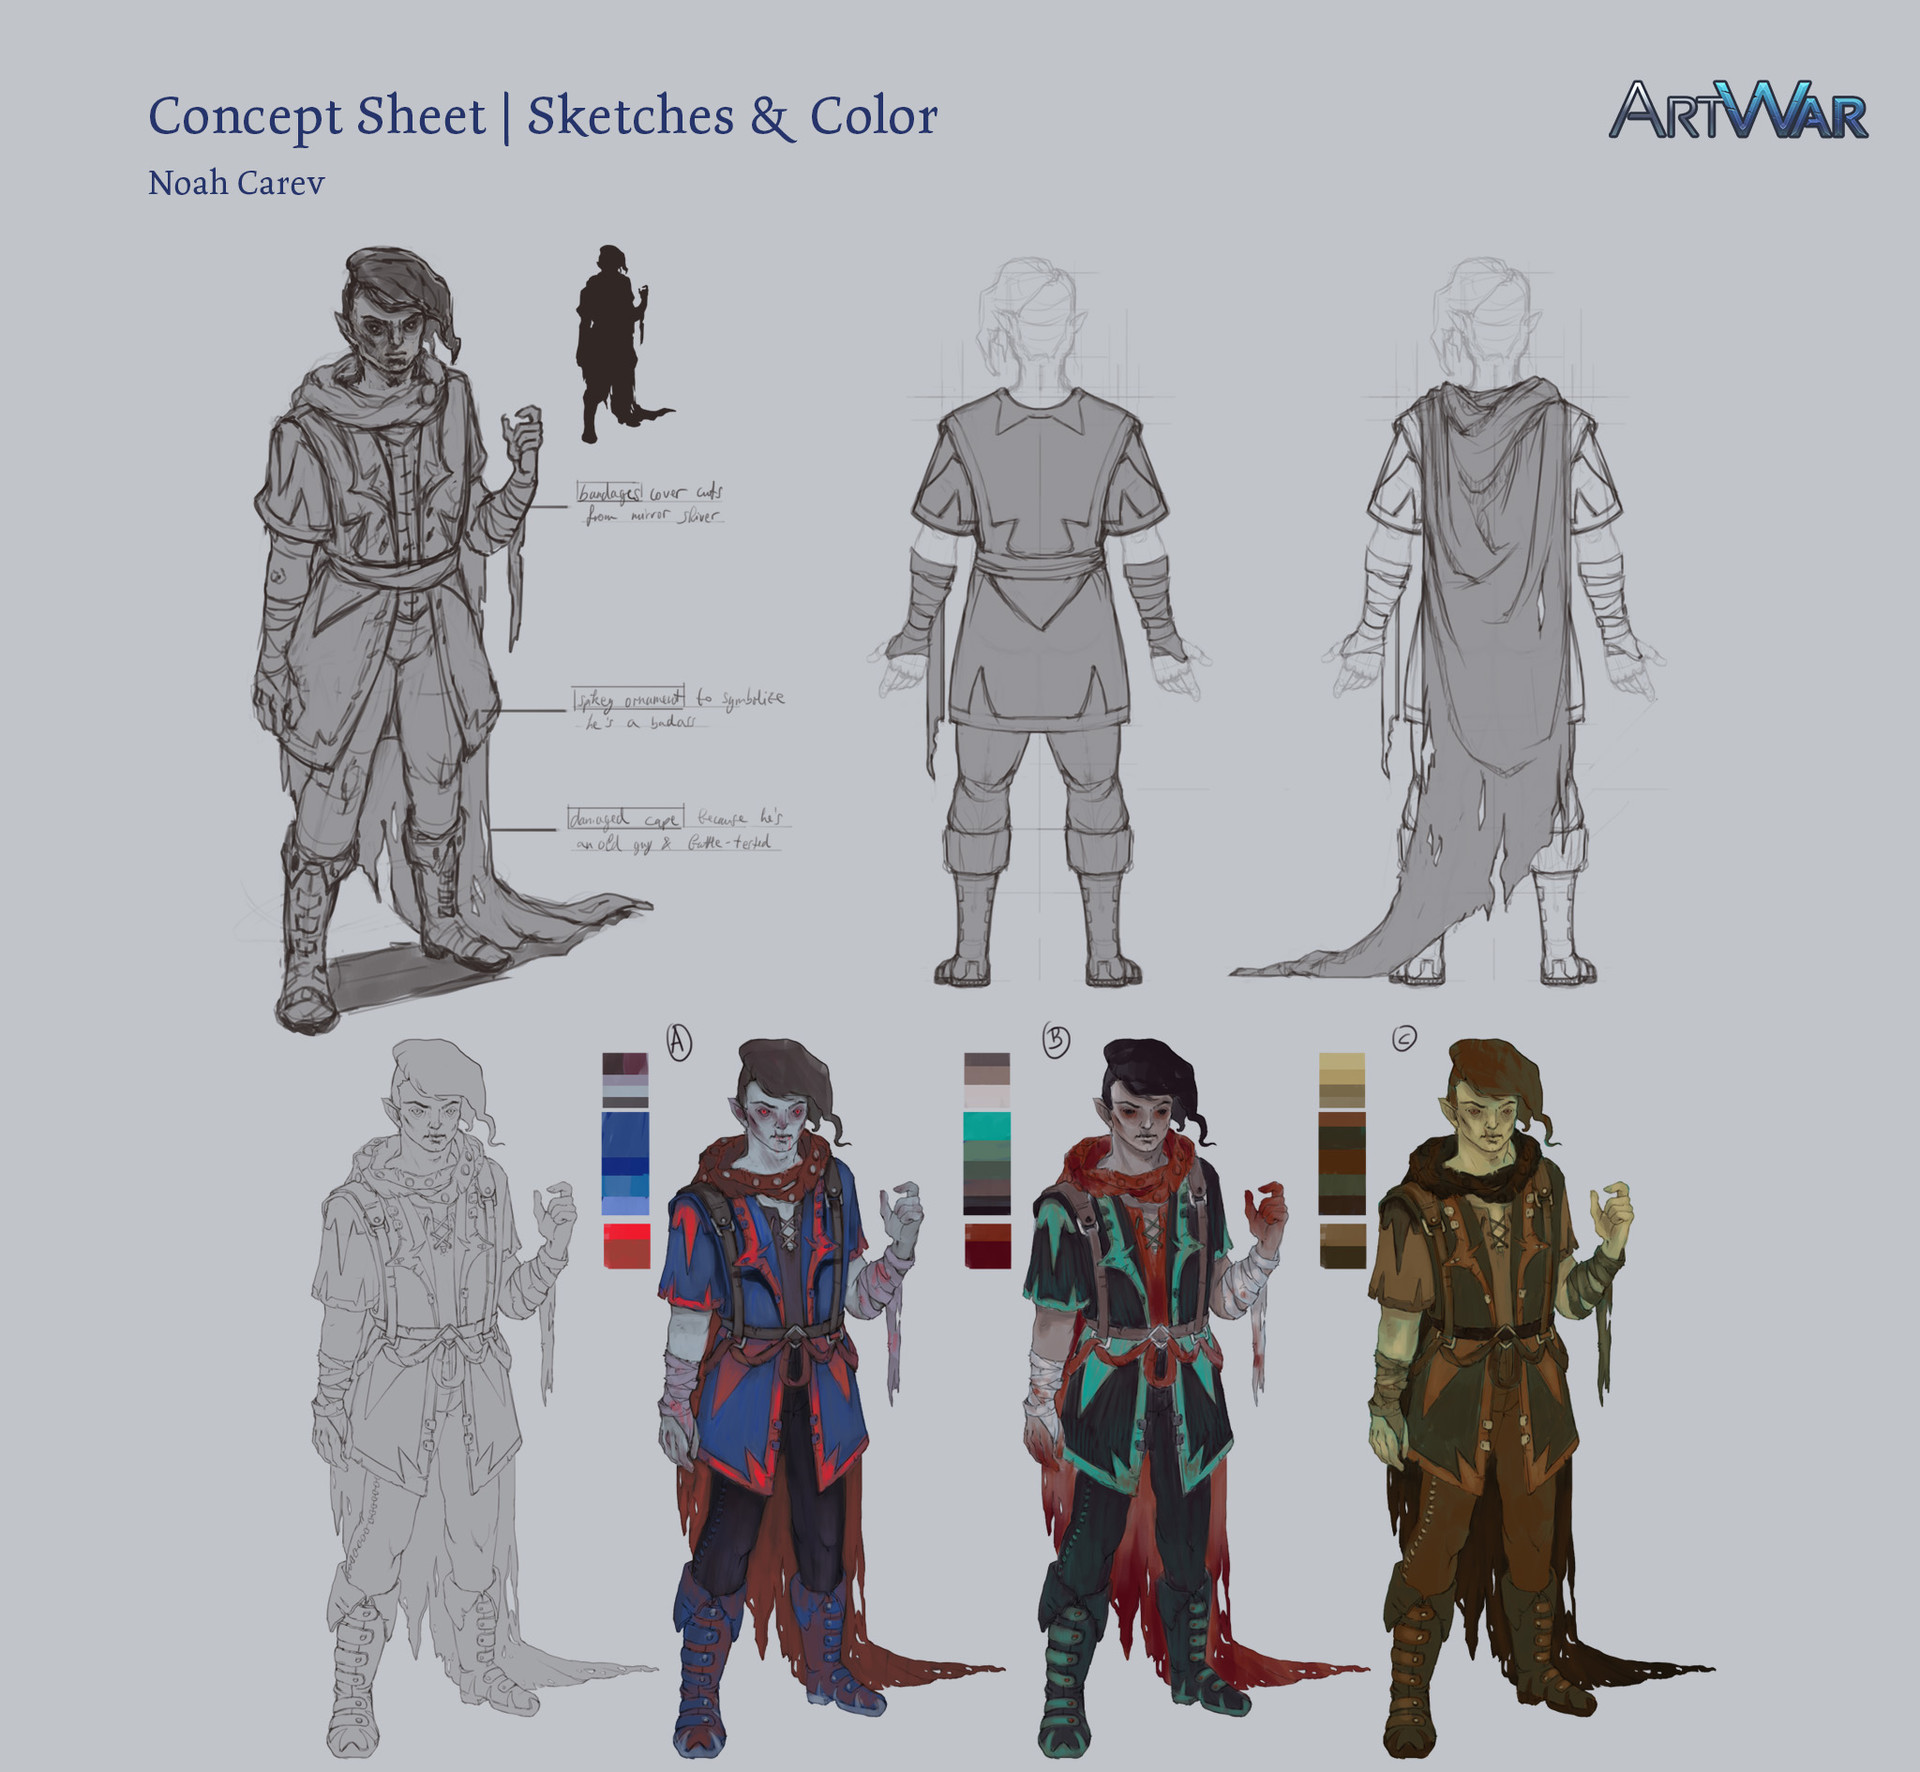 Noah carev artwar sketches frankenstejin noahcarev3